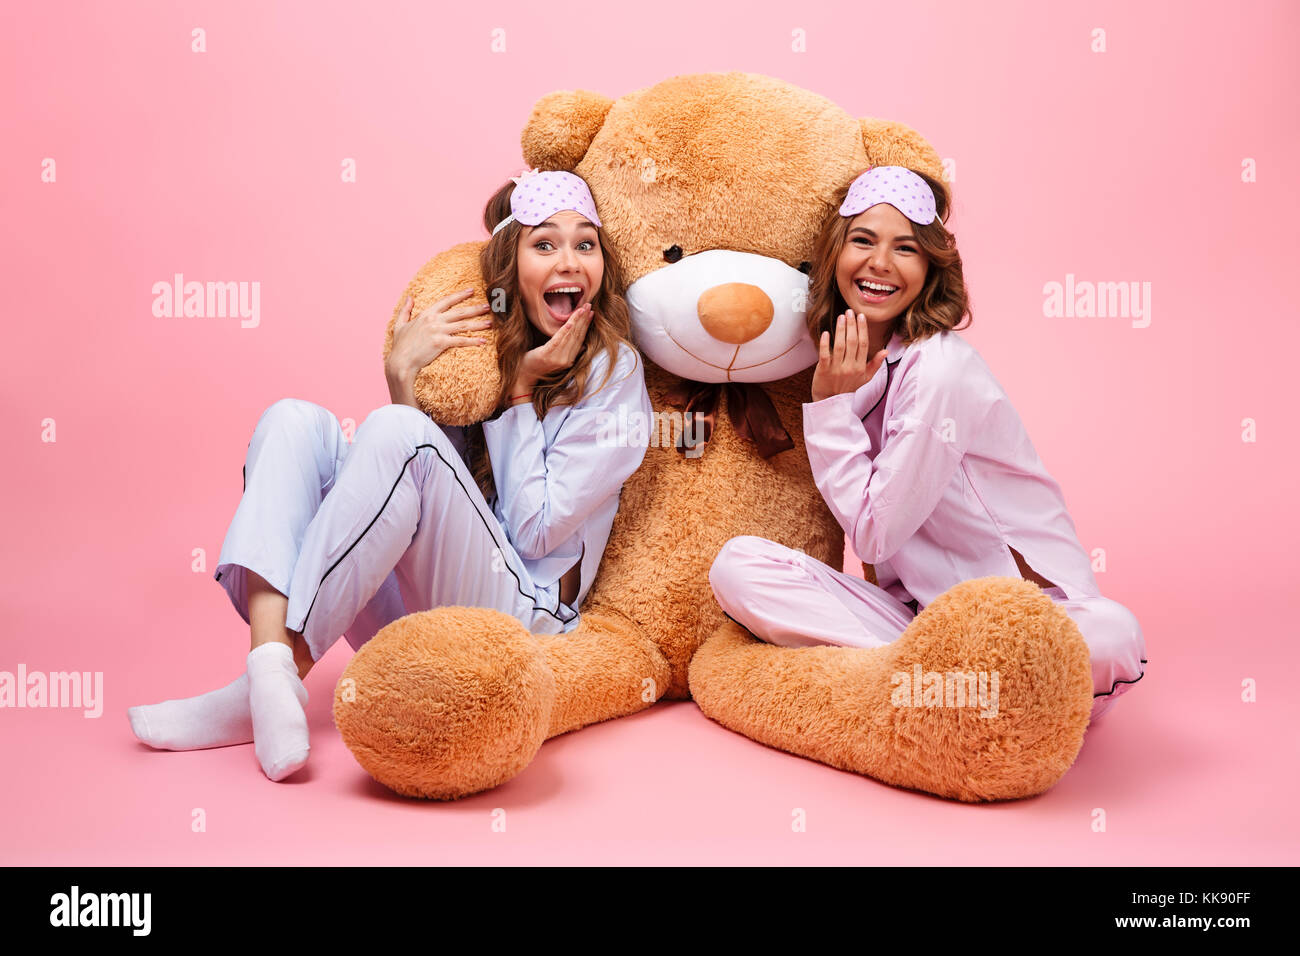 Two pretty cheerful girls dressed in pajamas sitting with a big teddy bear  and having fun isolated over pink 91f21c7b5